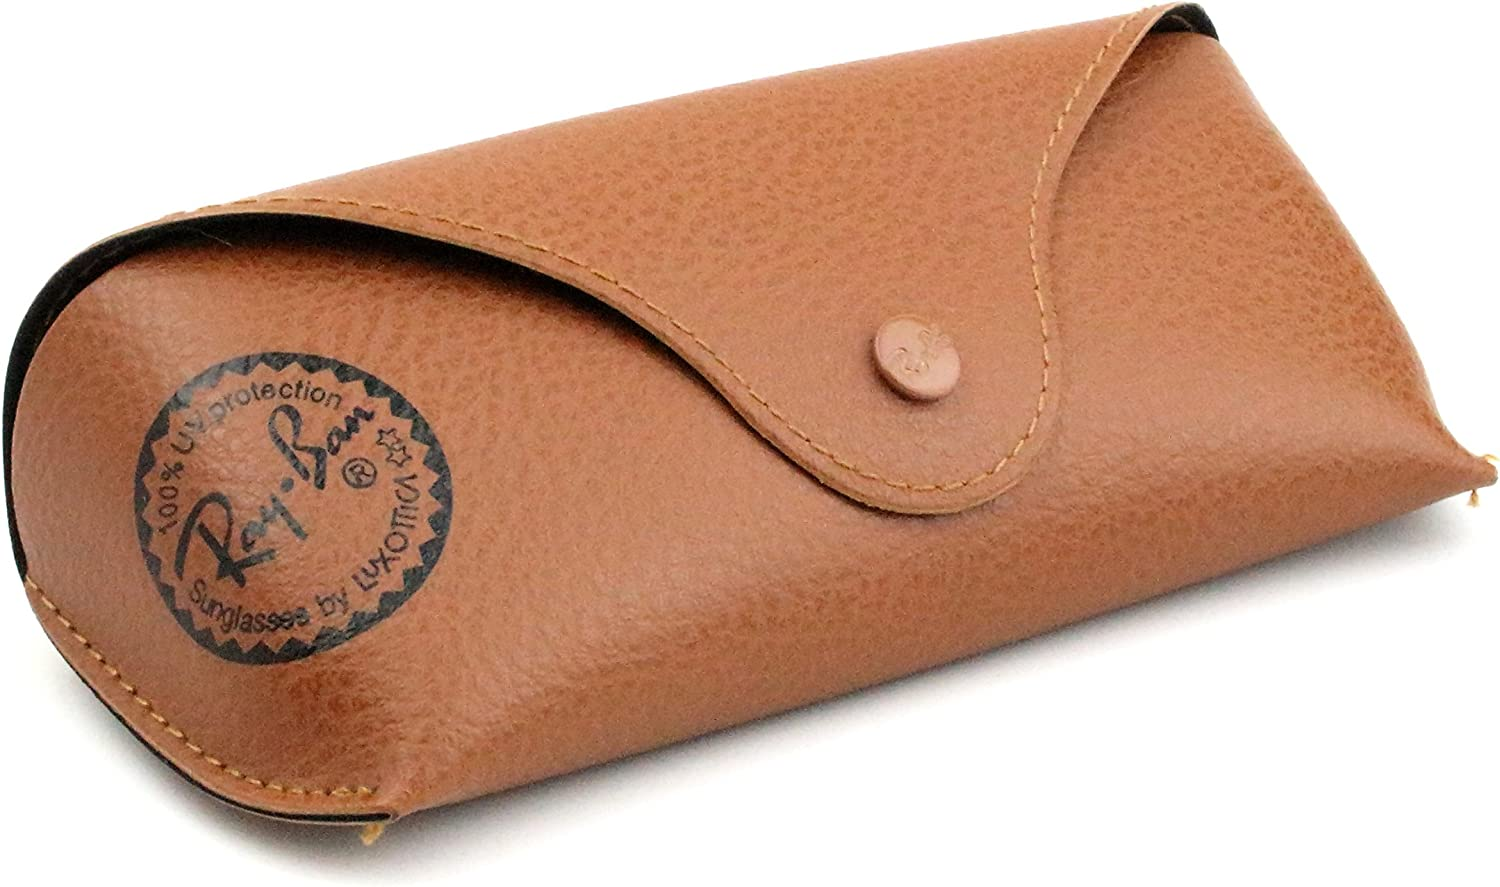 ray ban sunglasses case amazon